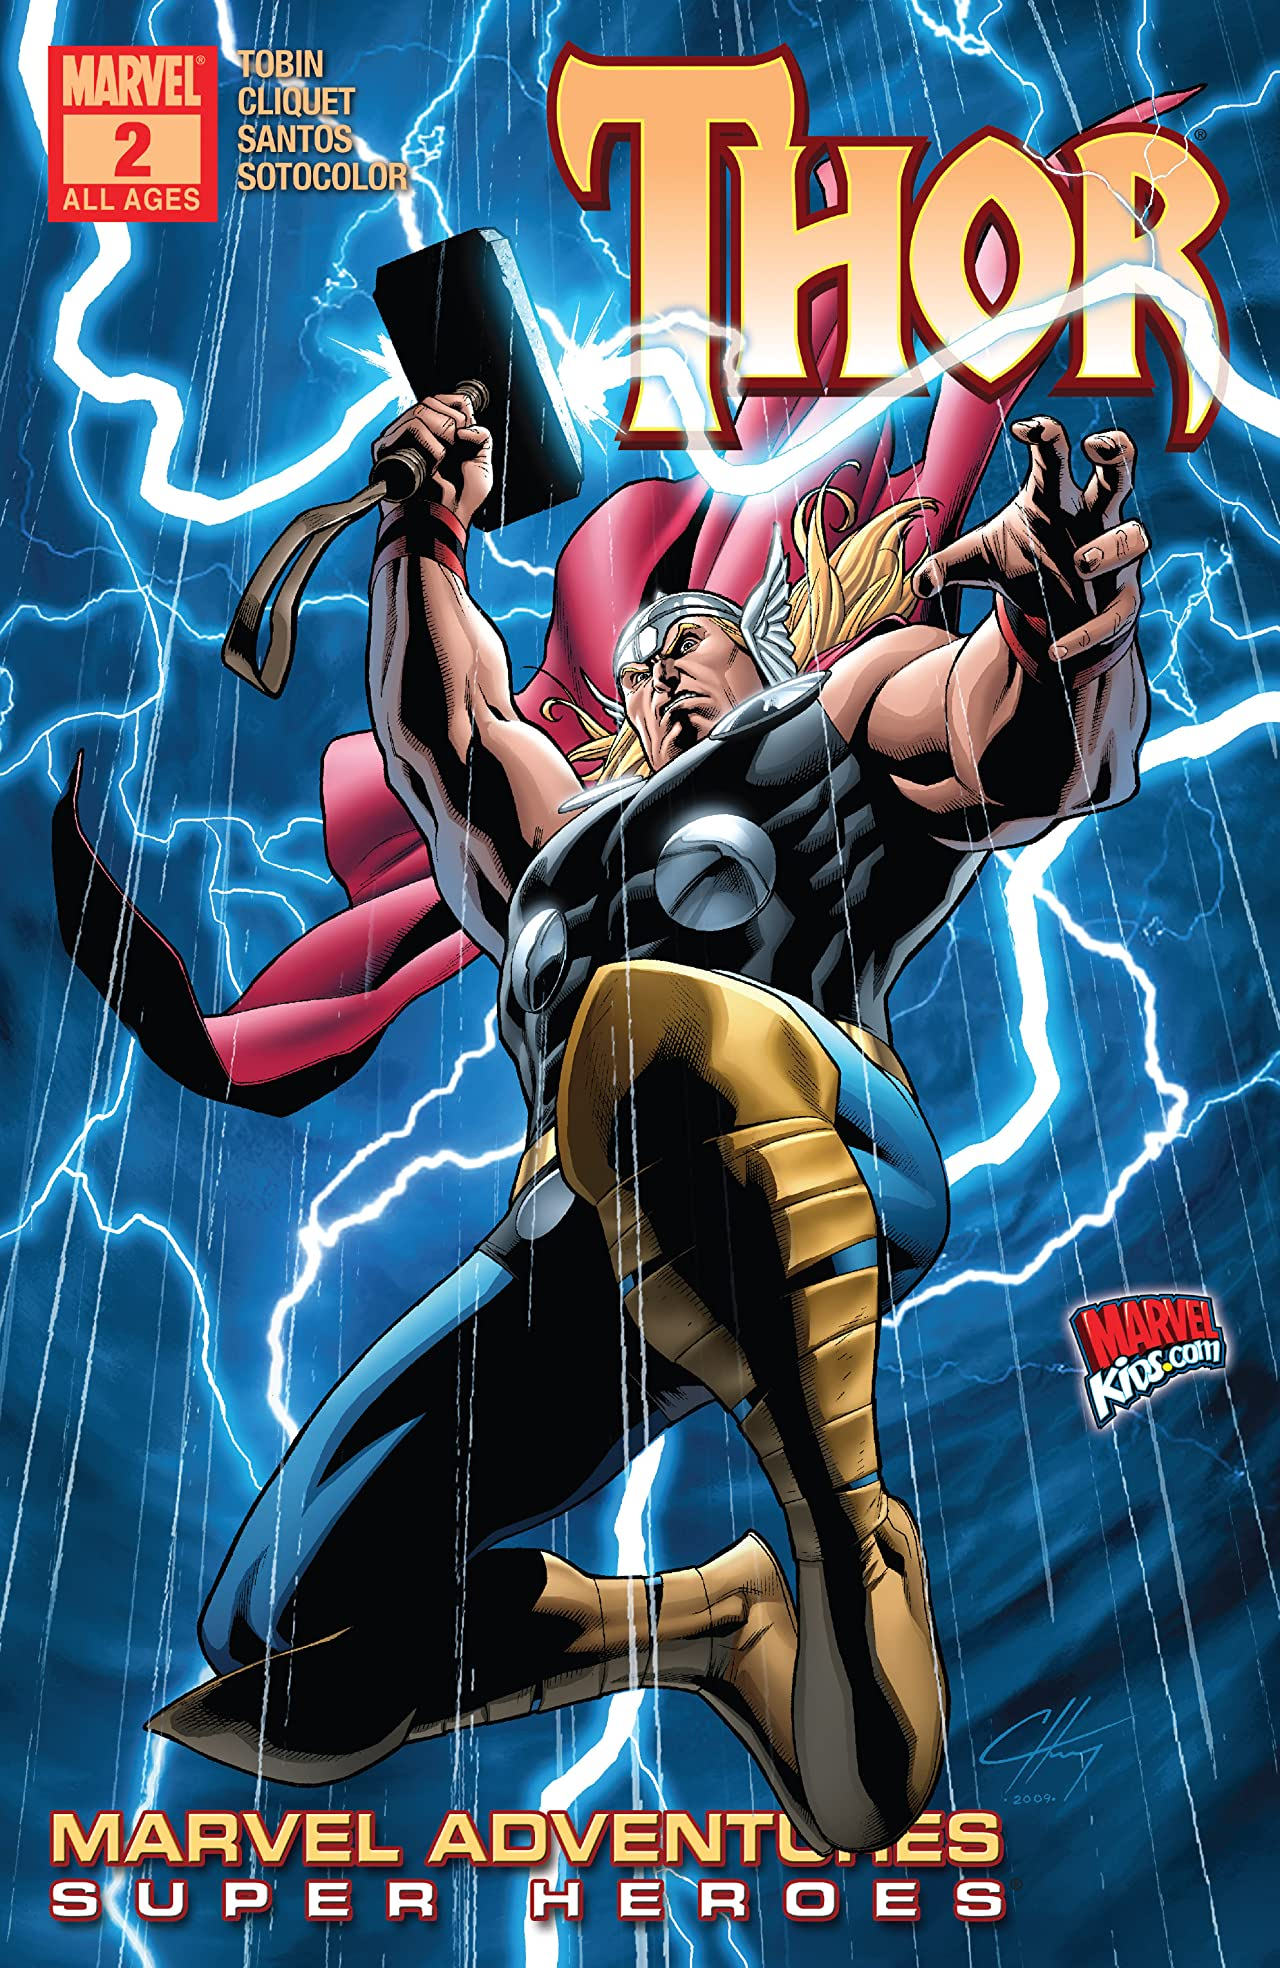 Marvel Adventures: Super Heroes (2010-2012) #2